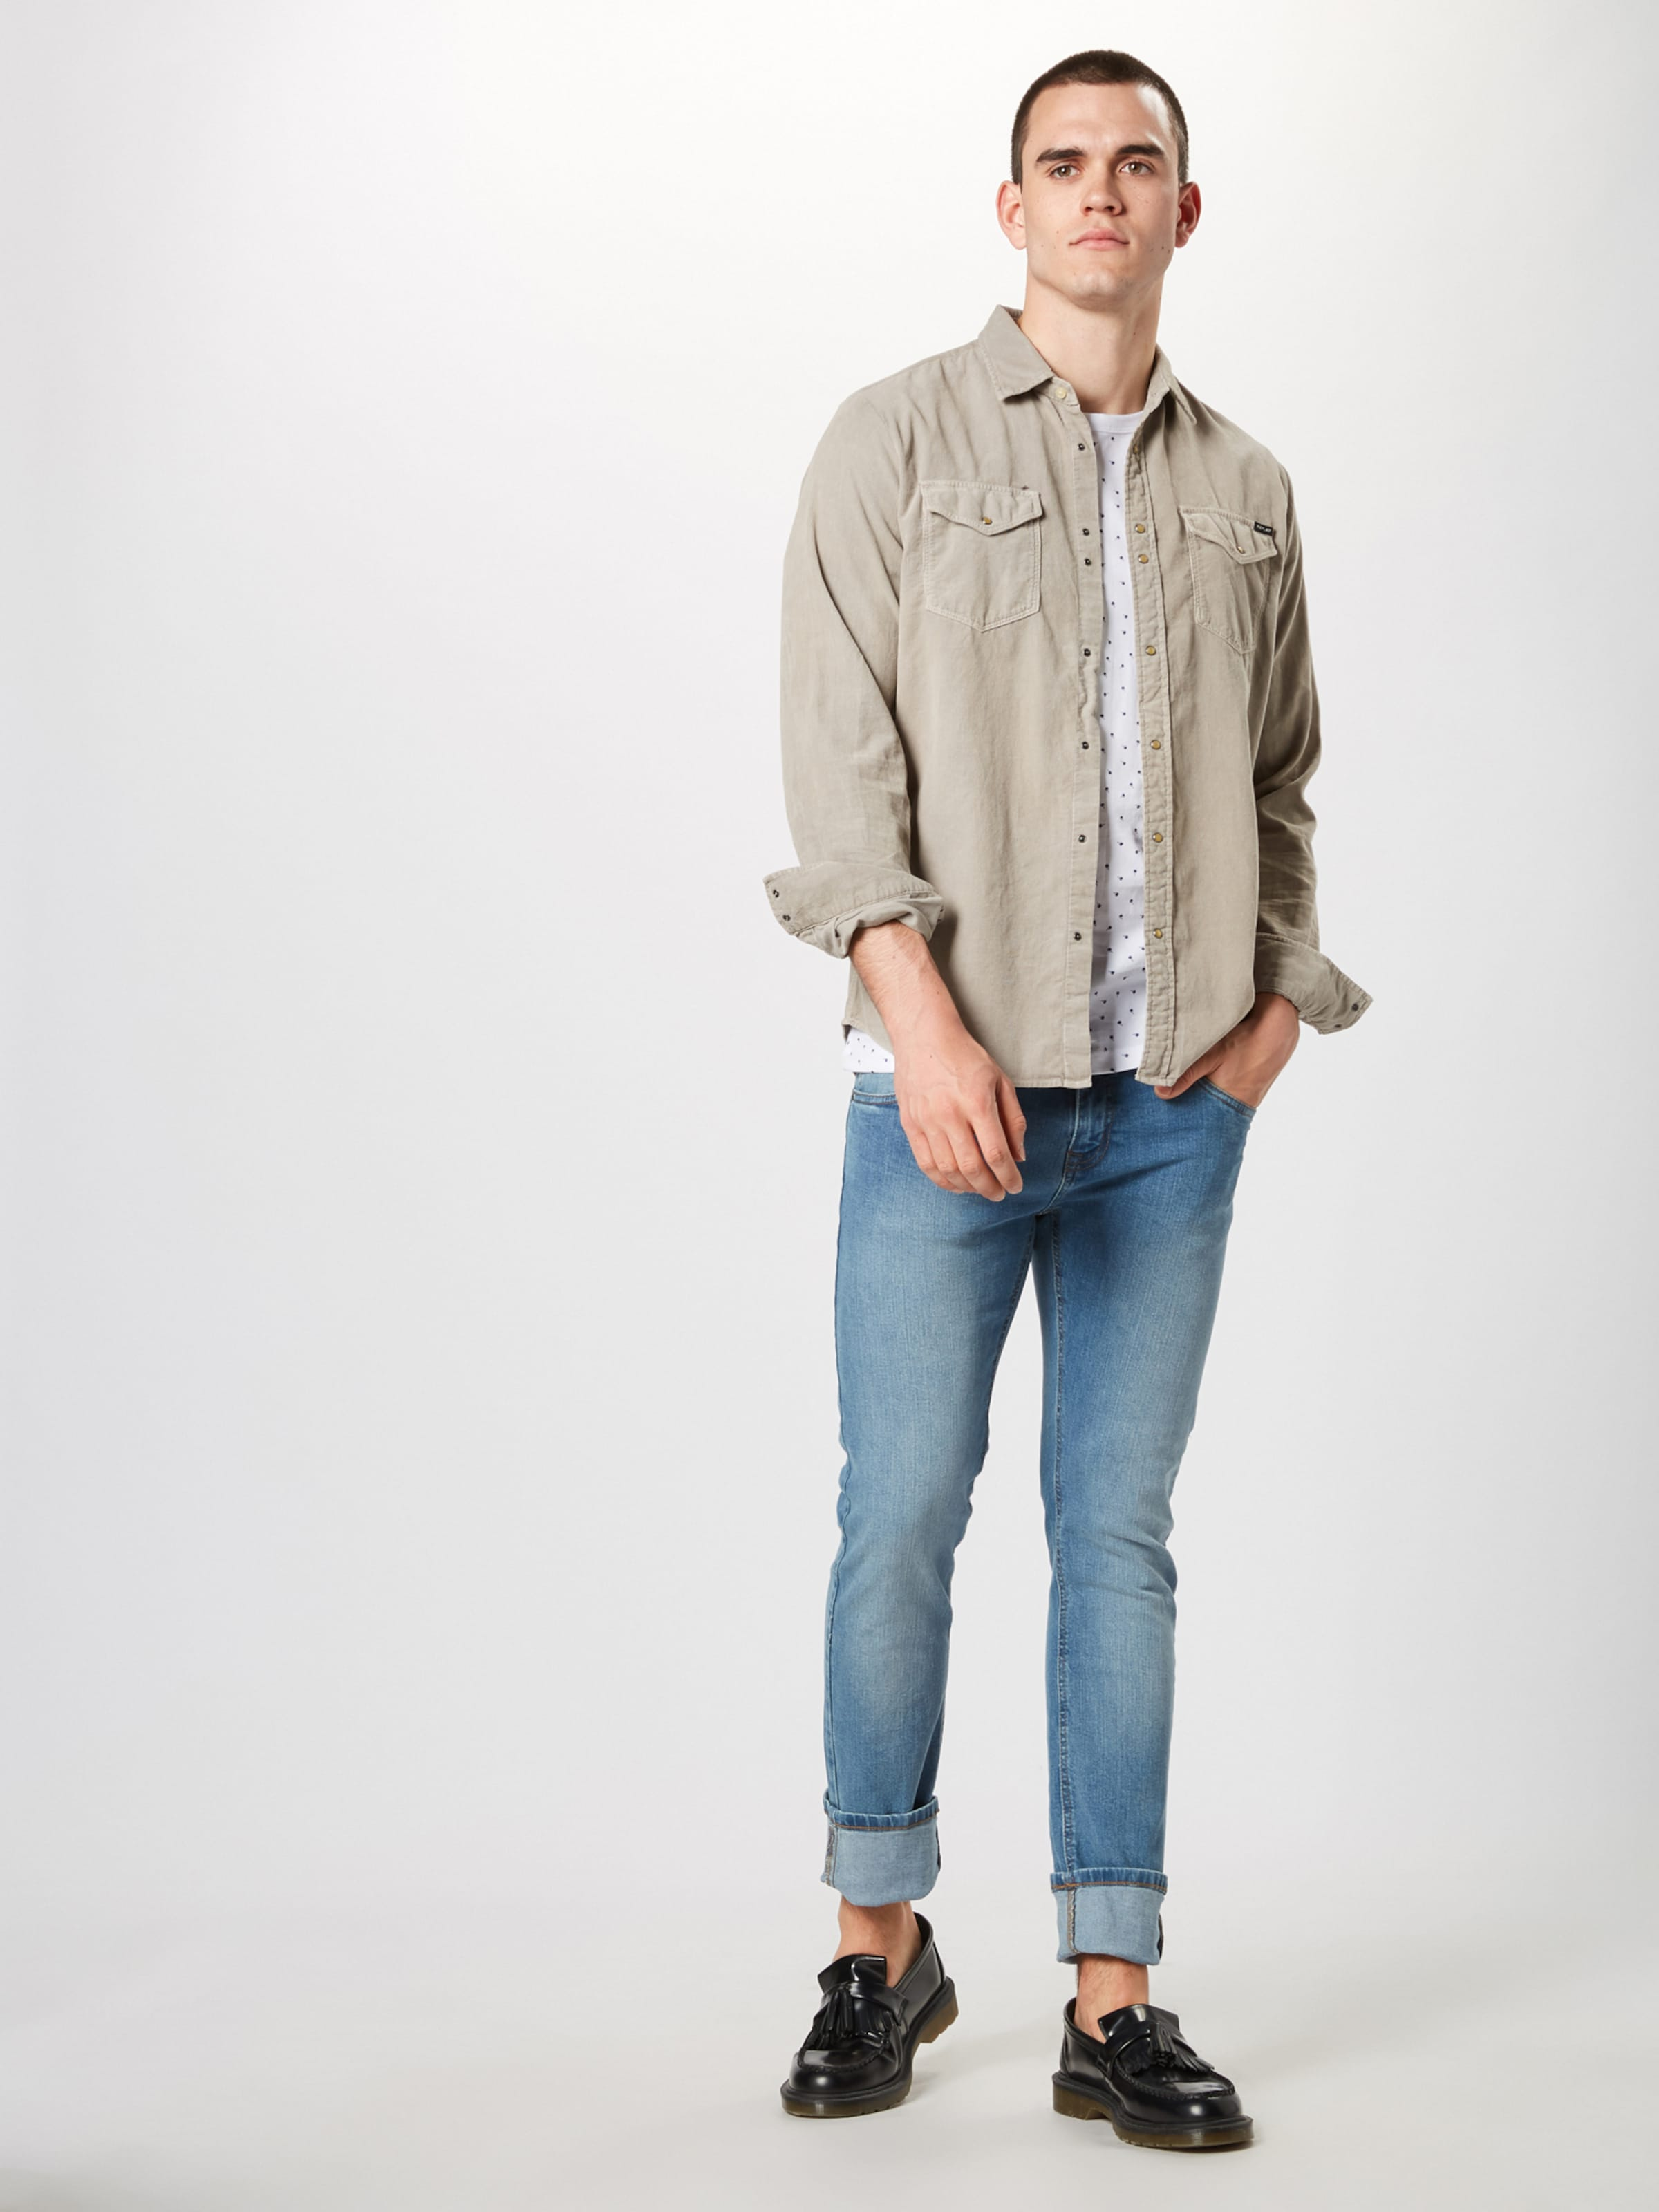 Denim Bleu FoncéBlanc Tom En Tailor shirt T 8mOnwvyN0